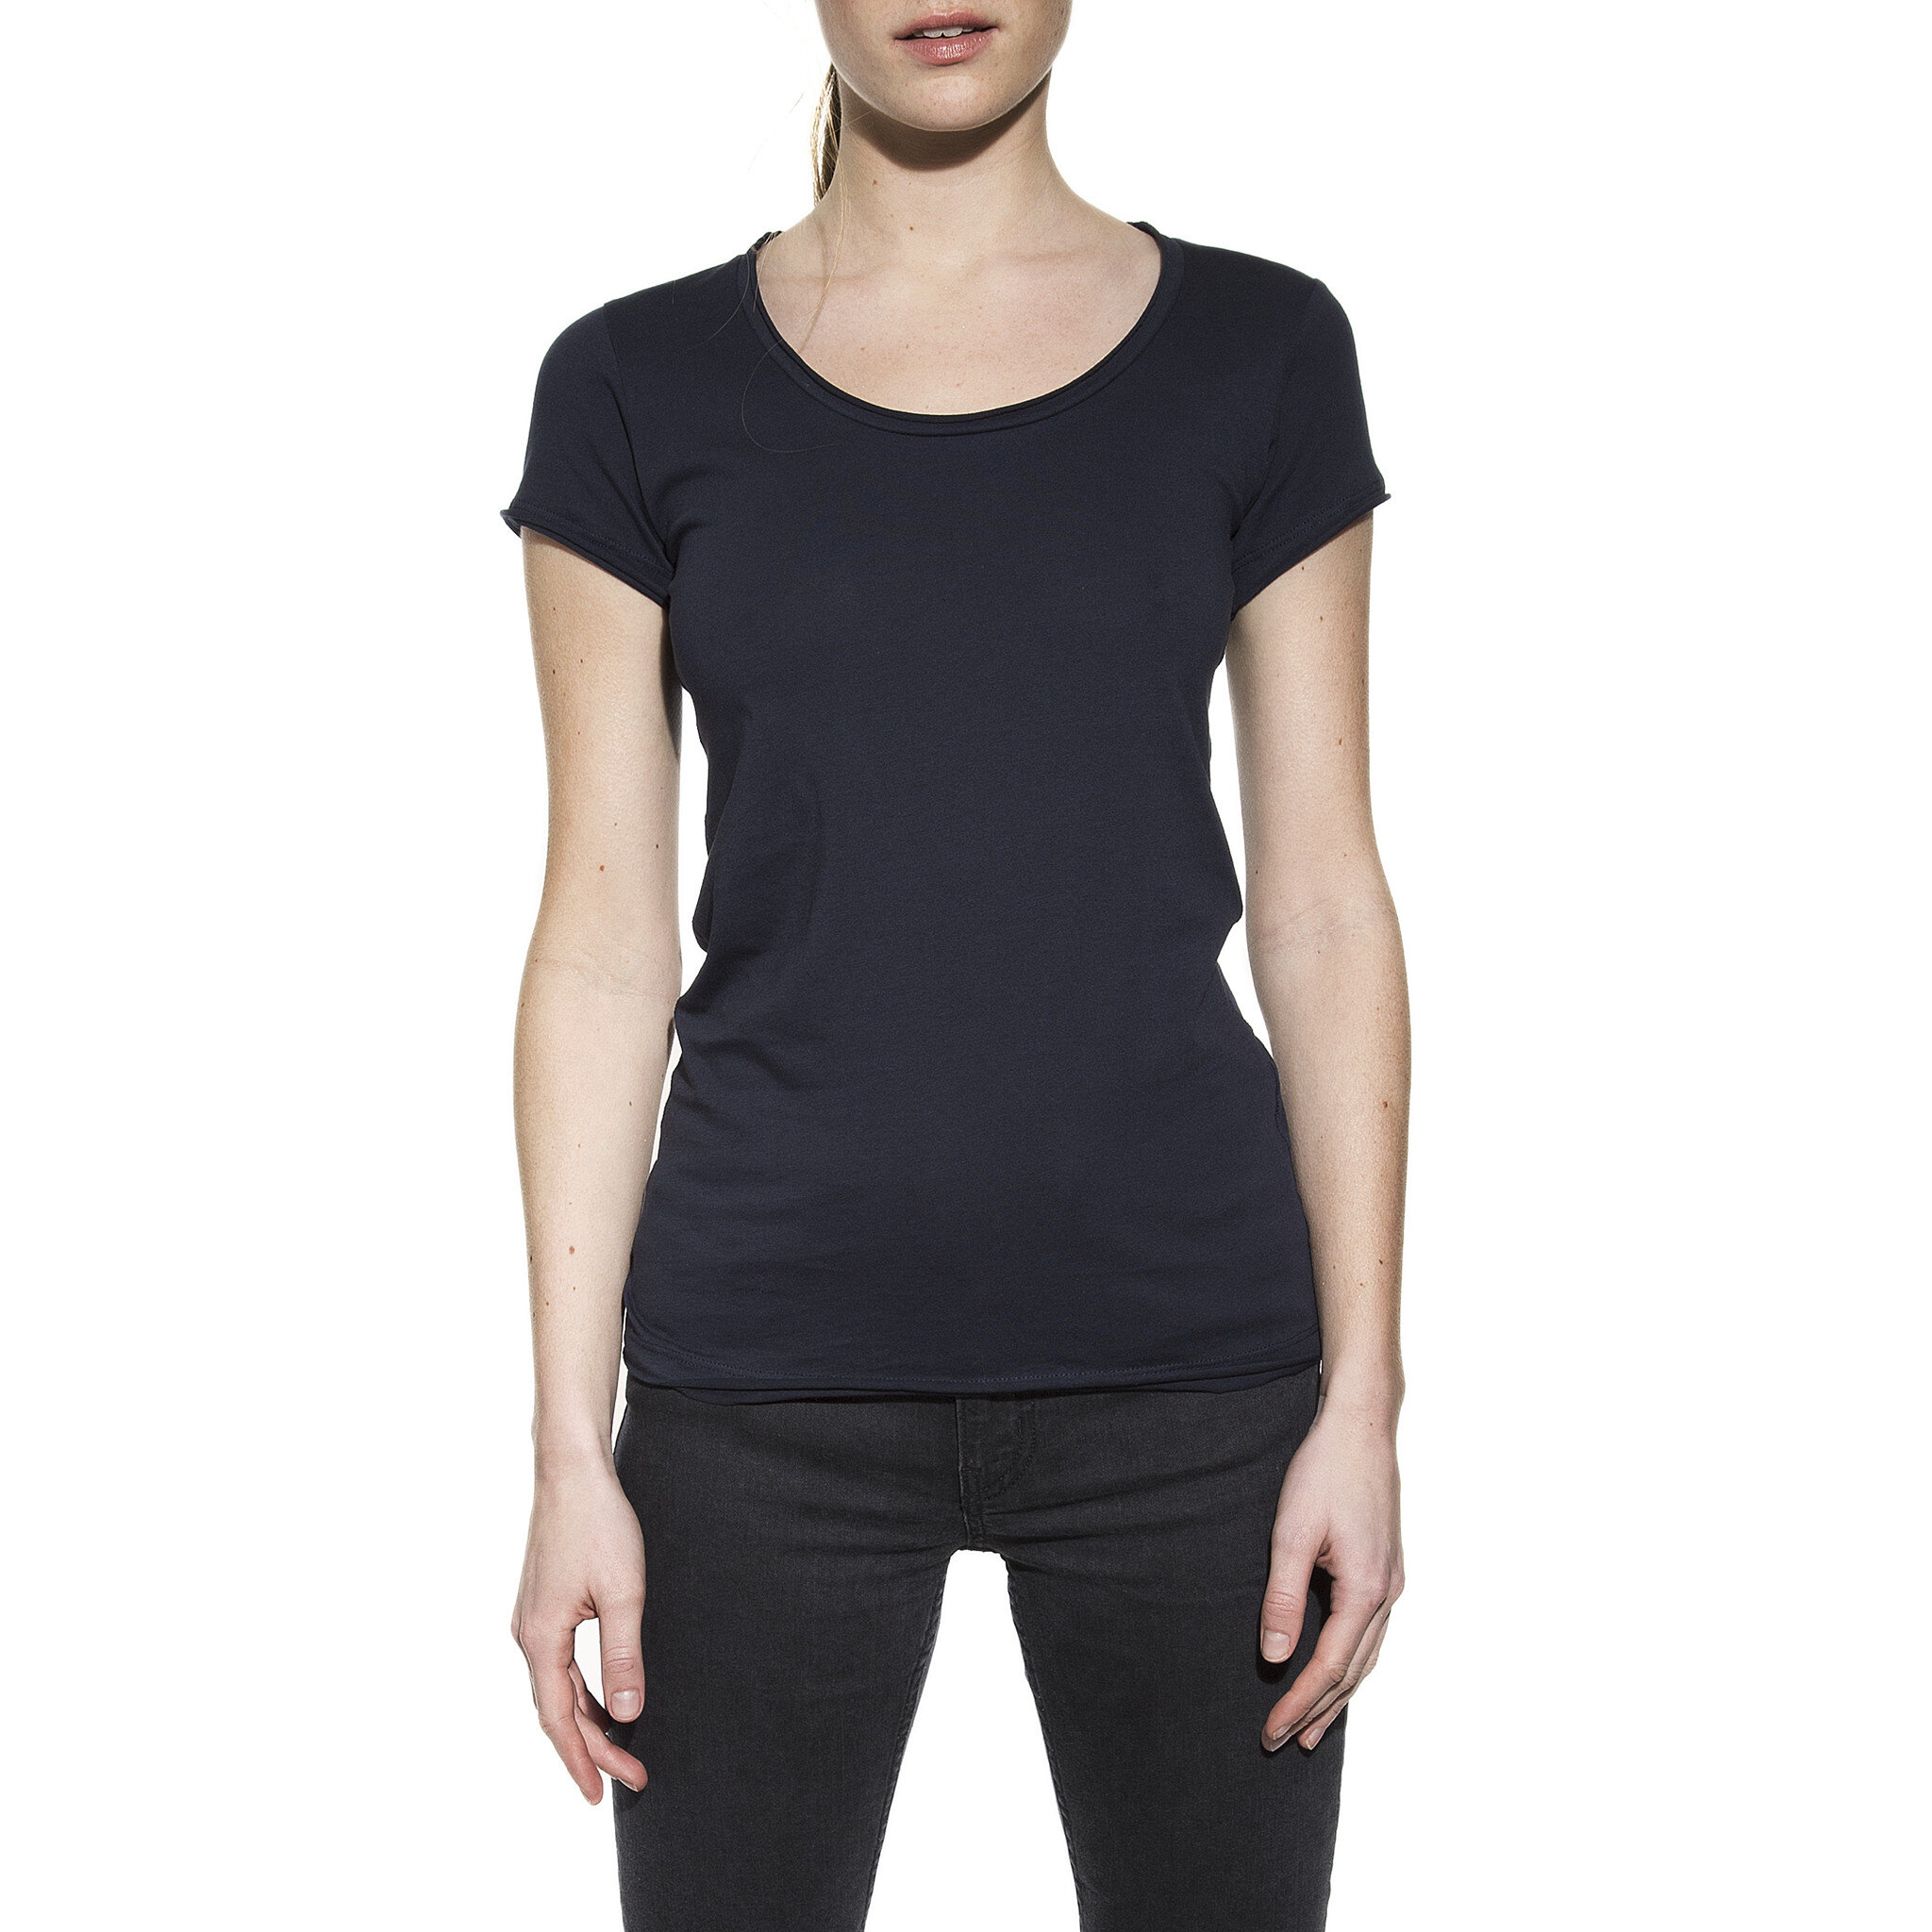 603104_Woman_Crew-Neck_relaxed_dark-navy_1